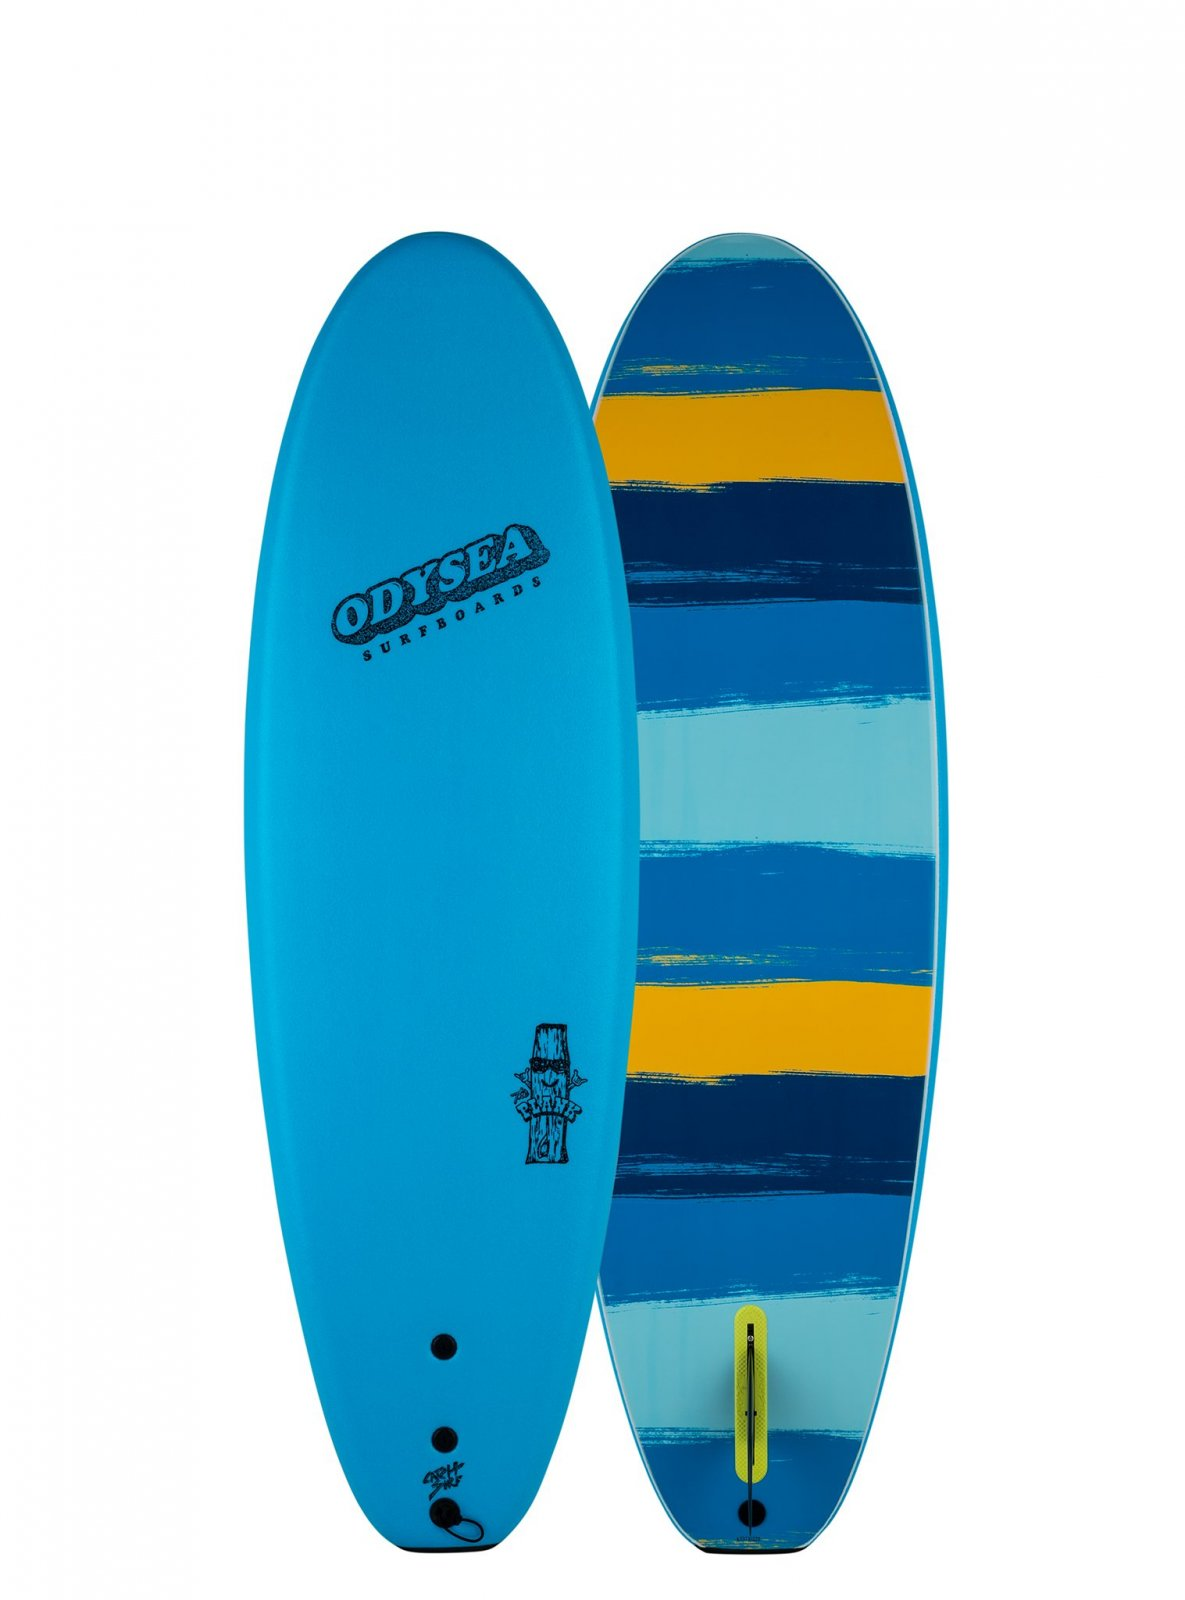 2020 Odysea 6-0 Plank- Single Fin